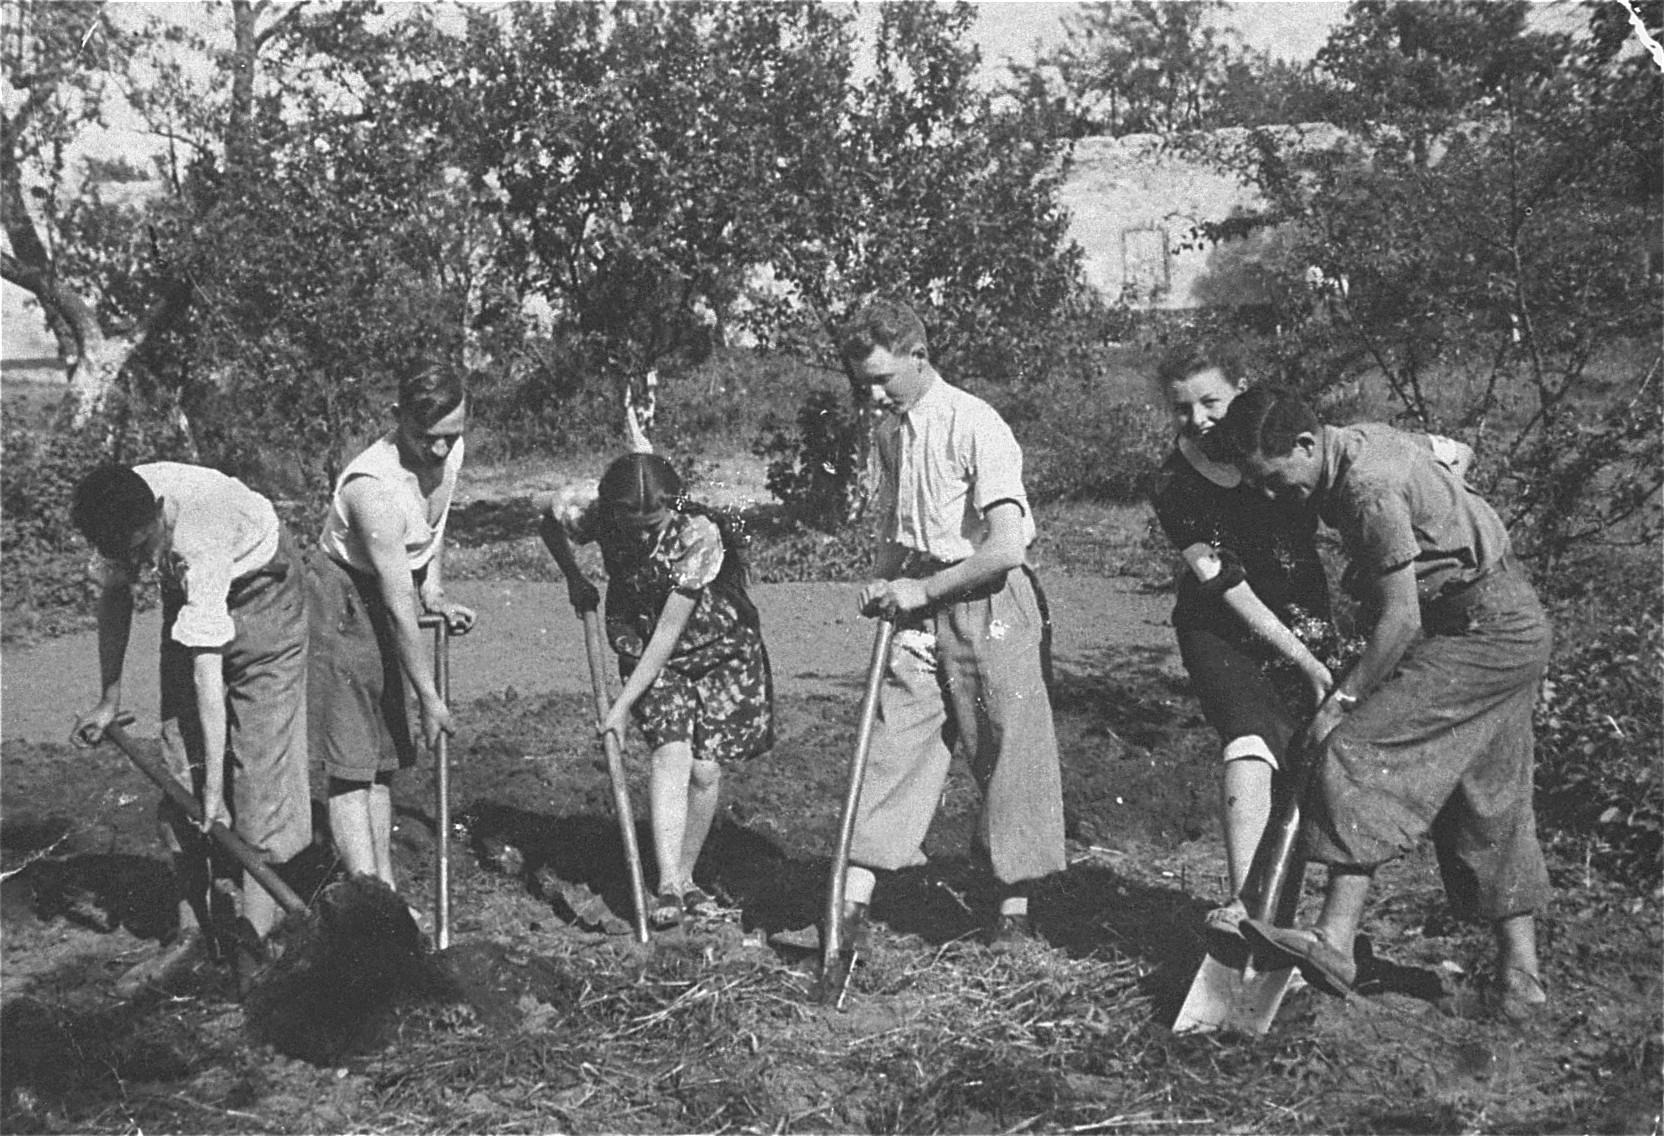 Members of the Hashomer Hatzair Zionist collective prepare the ground for planting on the farm in Zarki.  Among those pictured are: Heniek Pejsak (second from the left); Mania Kalpkop (third from the left); Lejzor Zborowski (third from the right); and Berek Lemel (first on the right).